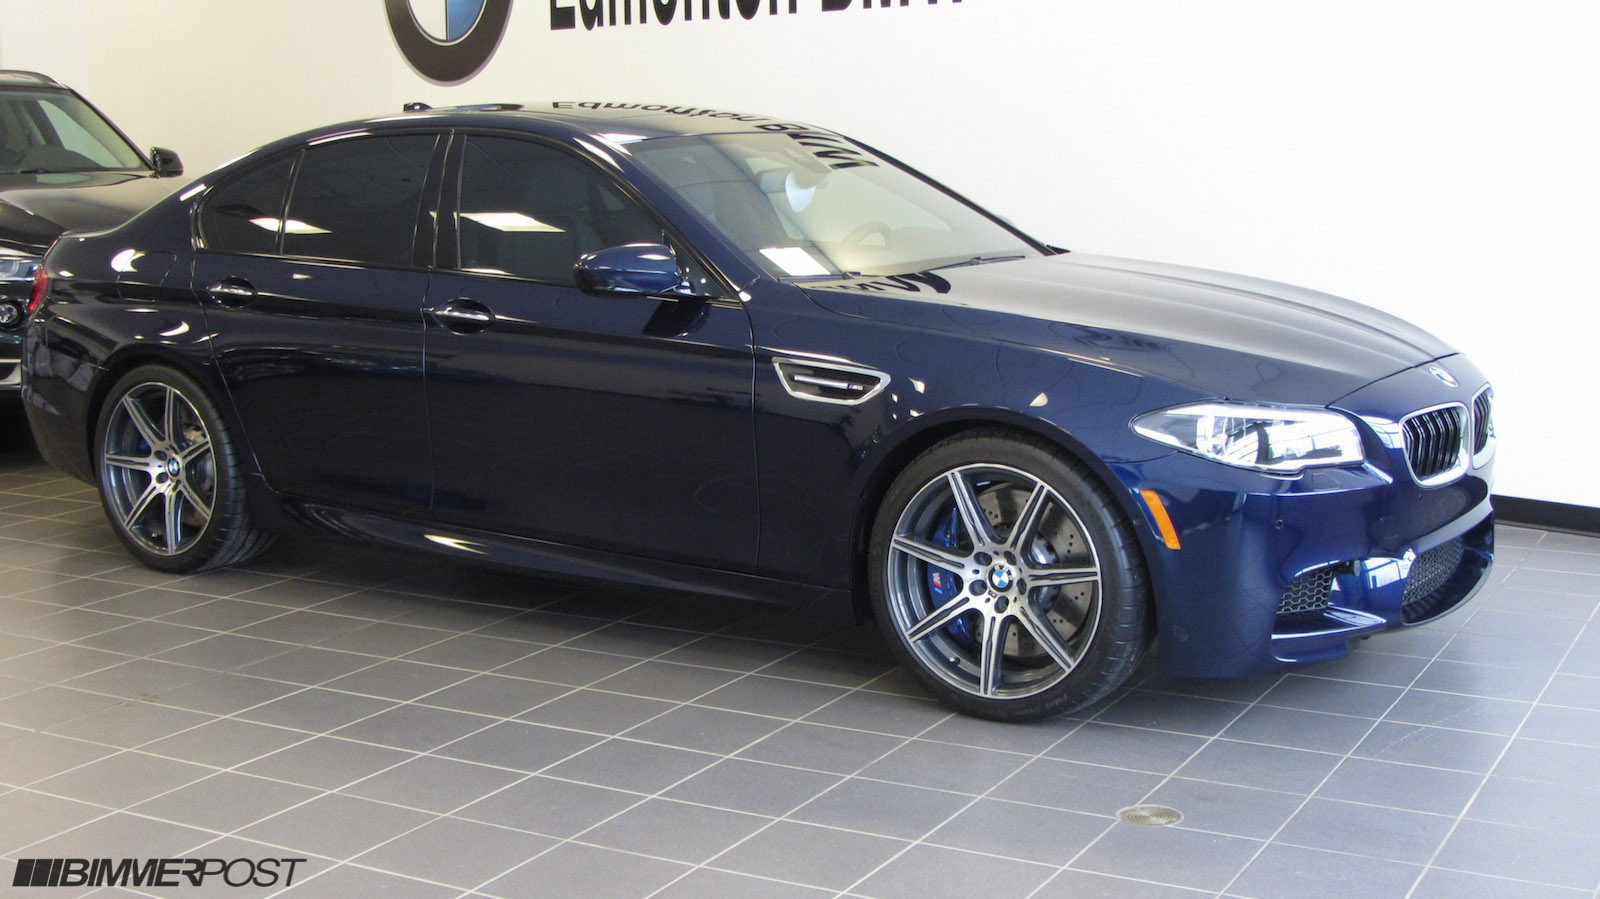 BMW Individual Tanzanite Blue & Cohiba Brown F10 M5 Competition